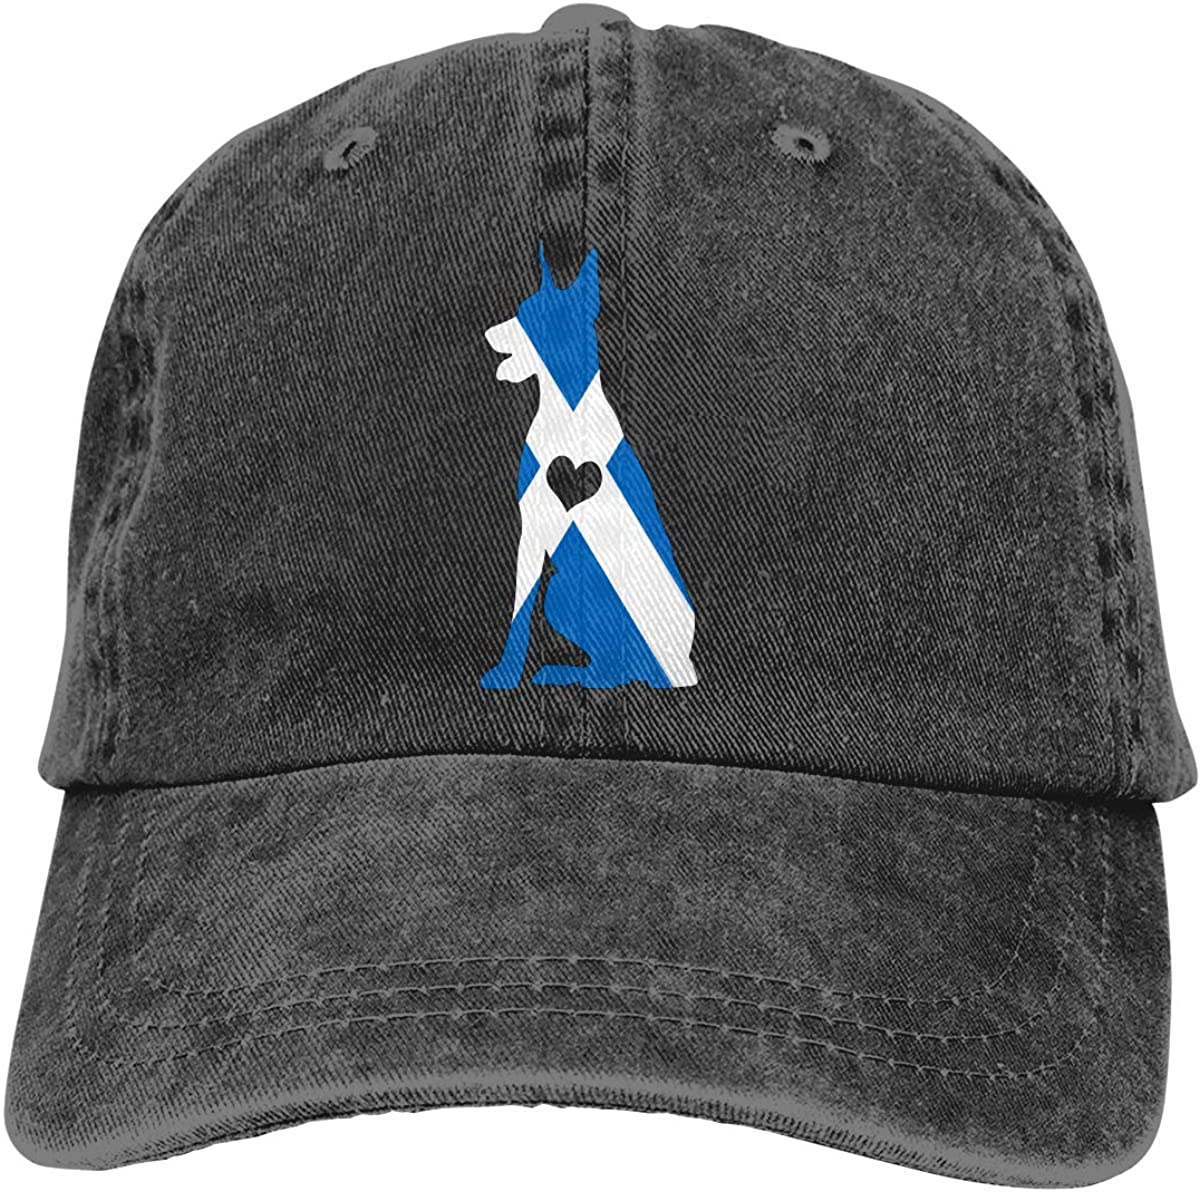 Re&Tro Men Women Scotland Flag Adore Dobermans Dog Adjustable Jeans Baseball Cap Outdoor Sports Hat